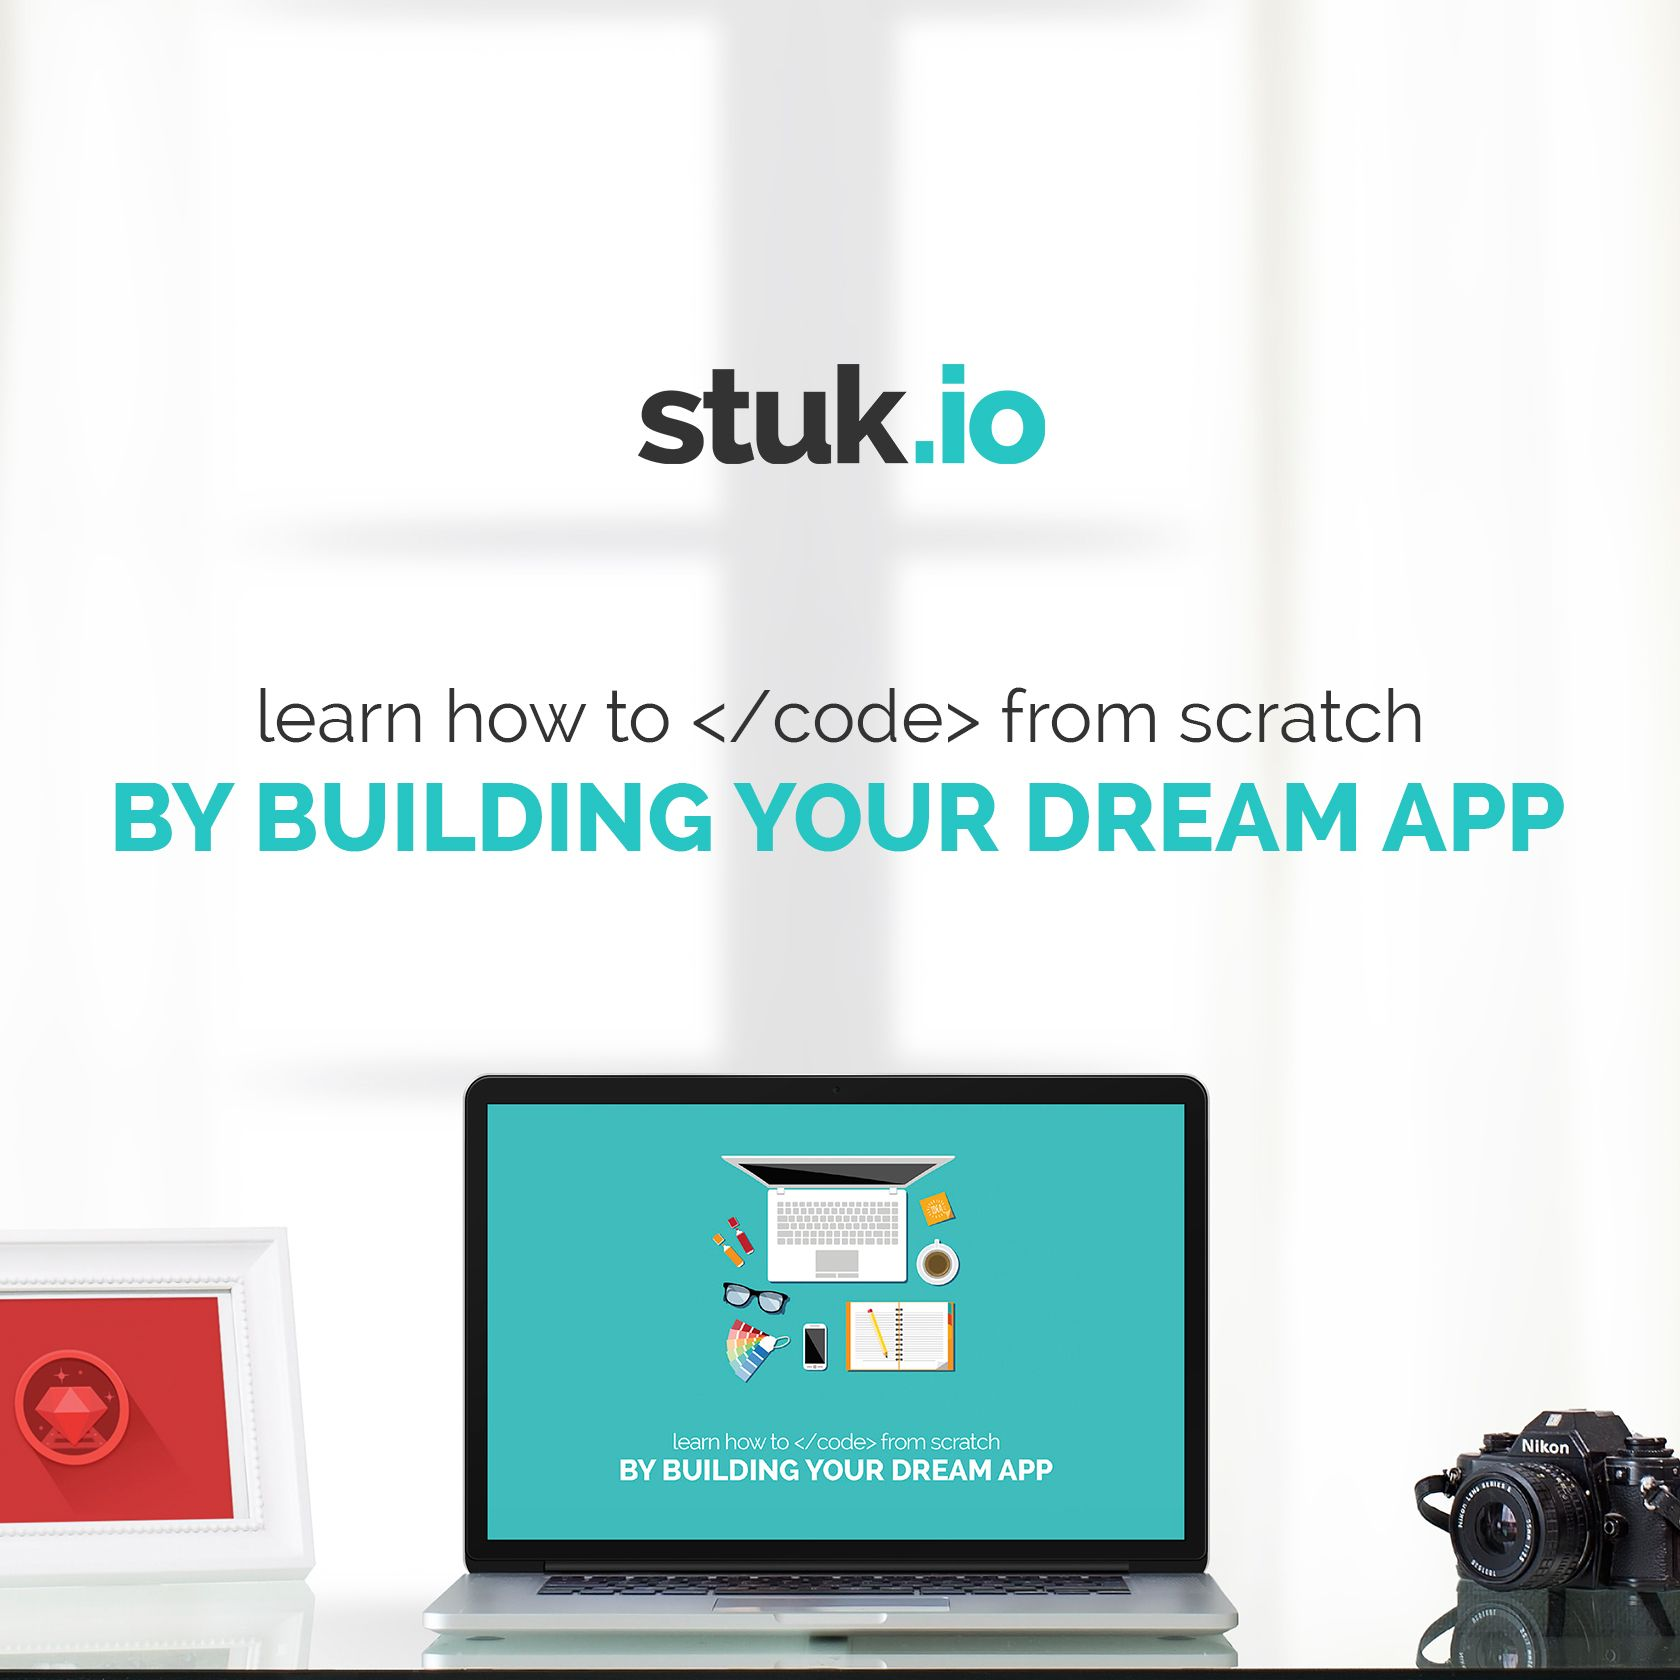 Protected: Win Lifetime access to Ruby on Rails Courses on Stuk.io (worth over $15000!)